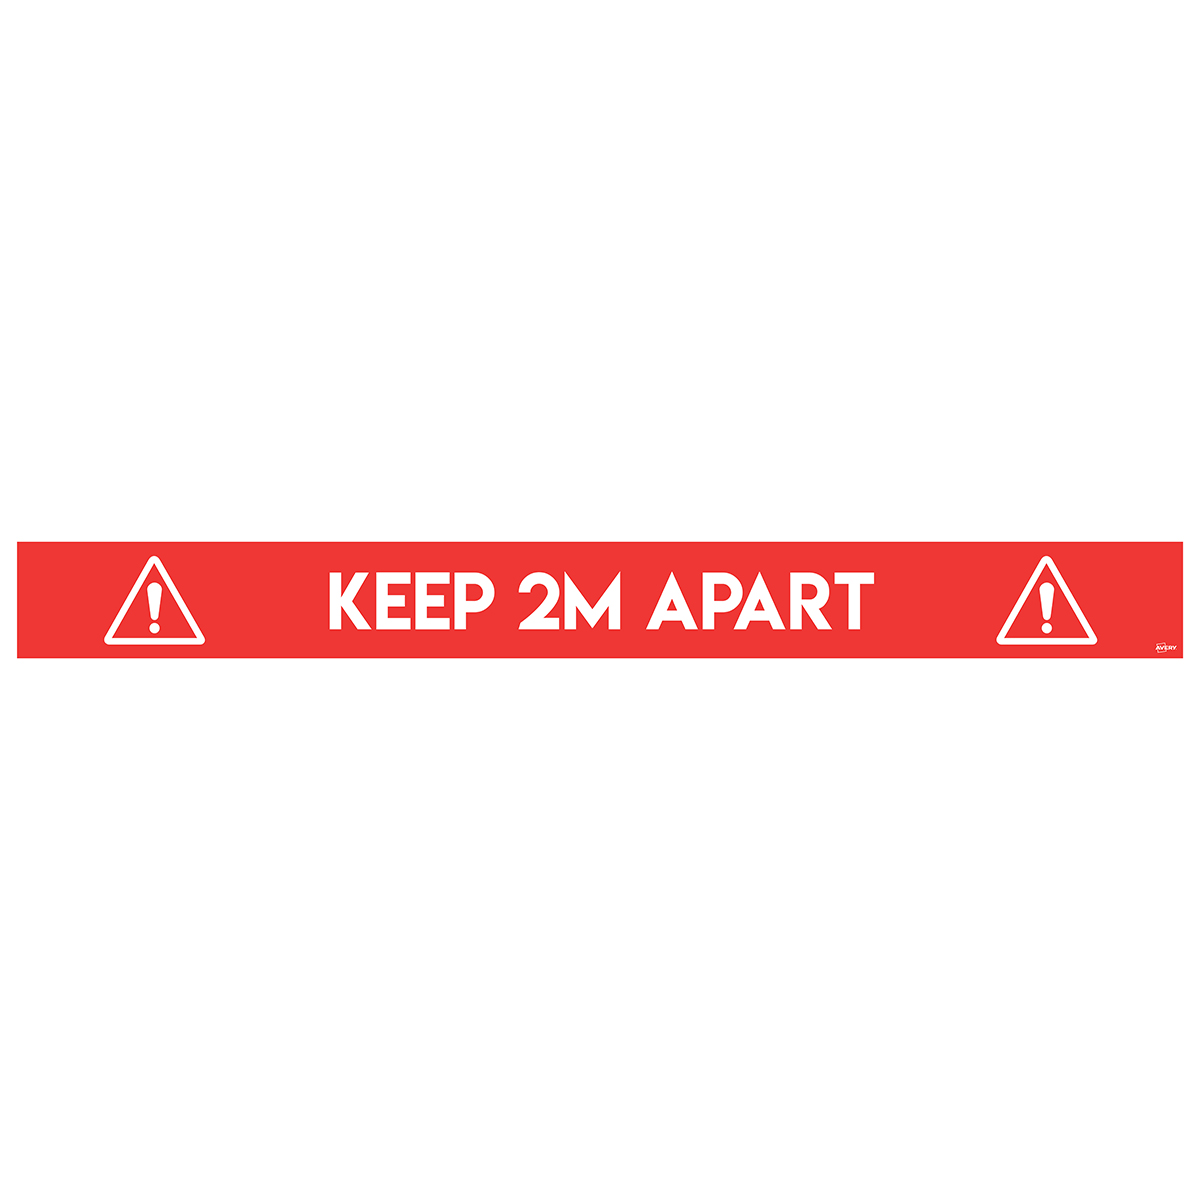 Avery Red COVID-19 Pre-Printed 2m Keep Apart Floor Sticker